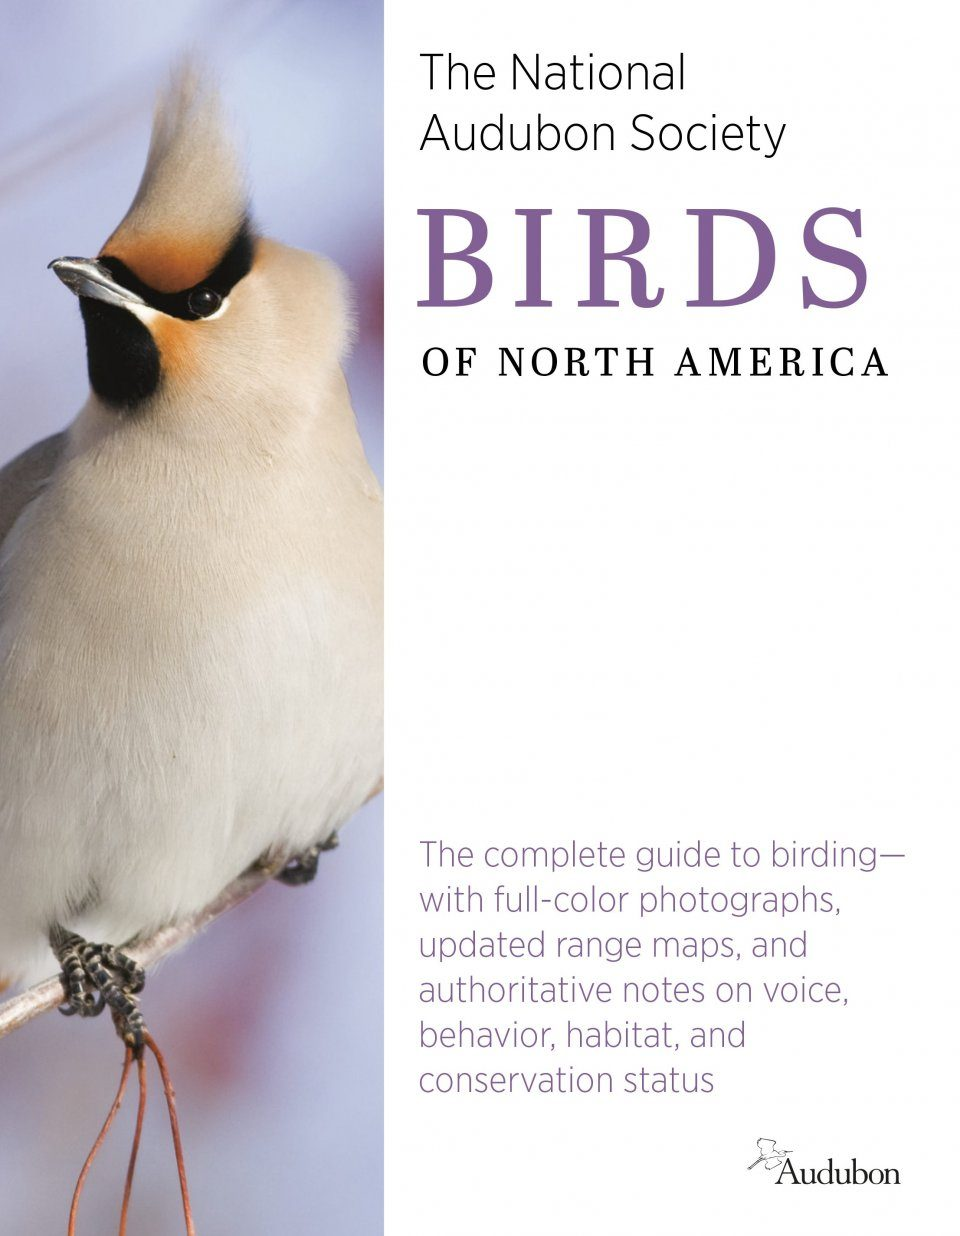 The National Audubon Society Book of Birds of North America